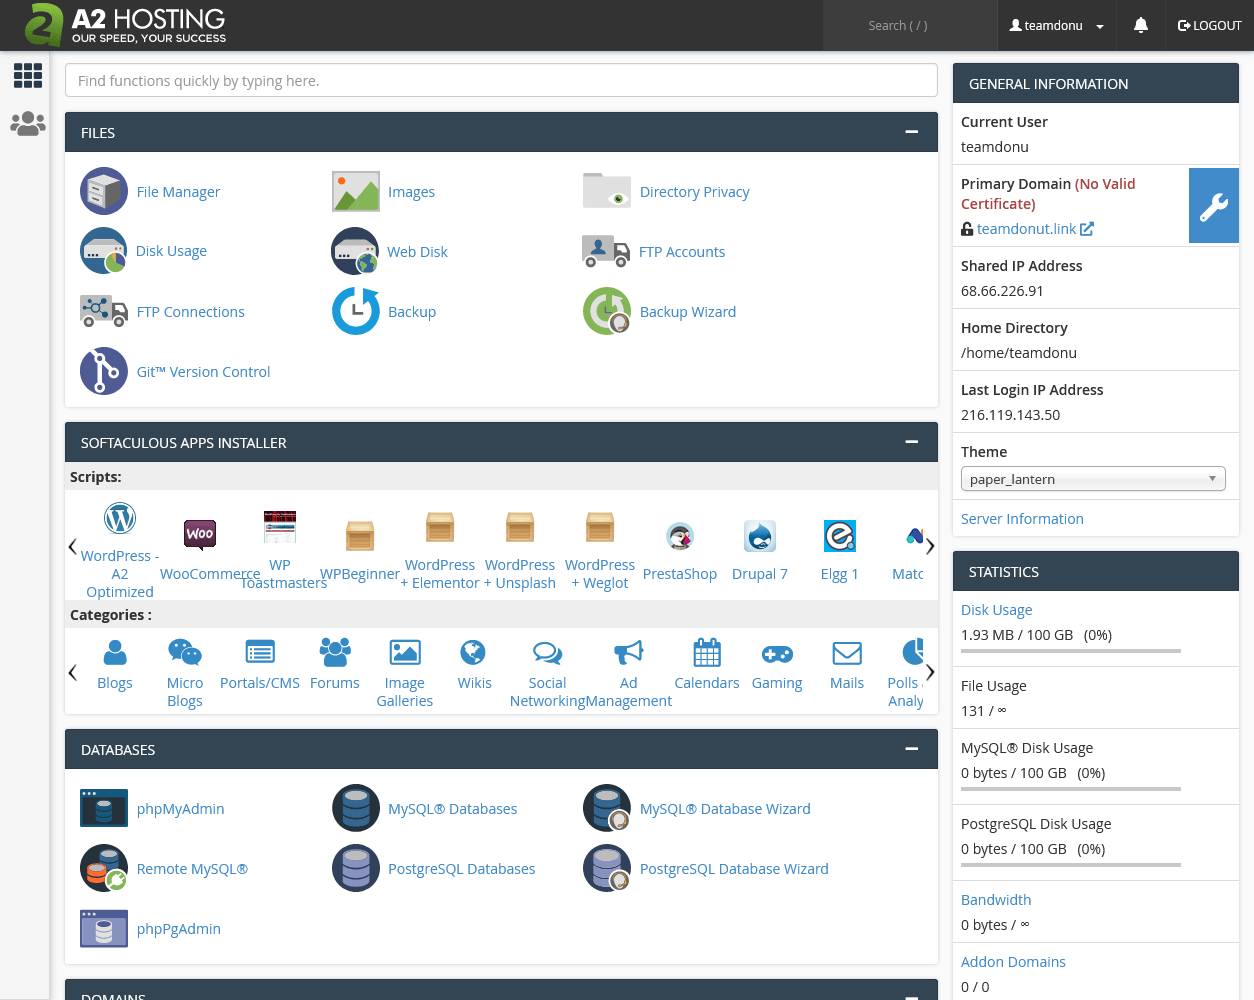 A2 Hosting's cPanel